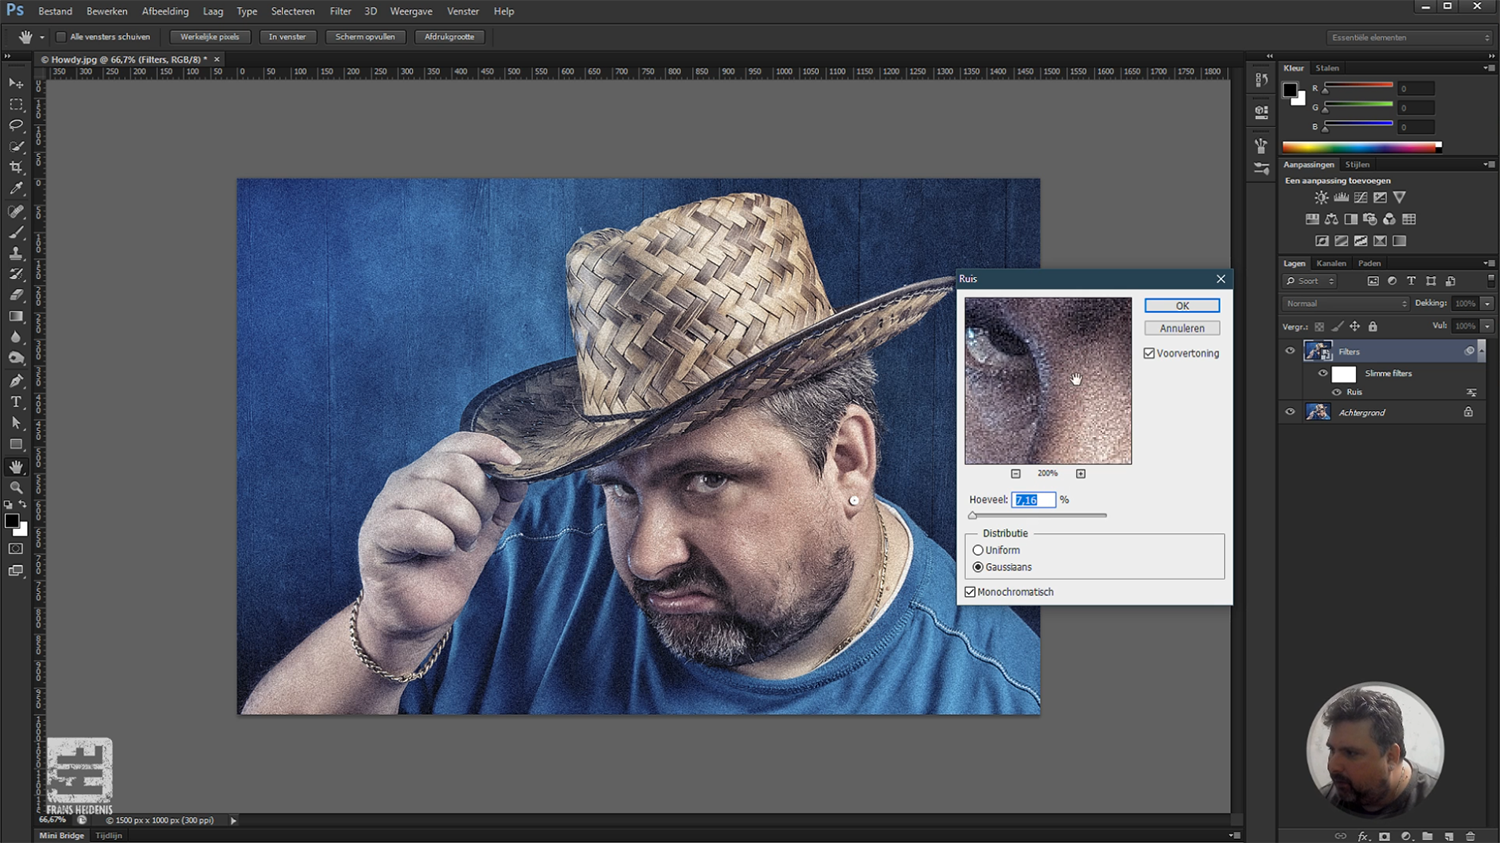 Screenshot van Les 8 - Gratis bonus les. Nederlandstalige online Photoshop workshop.